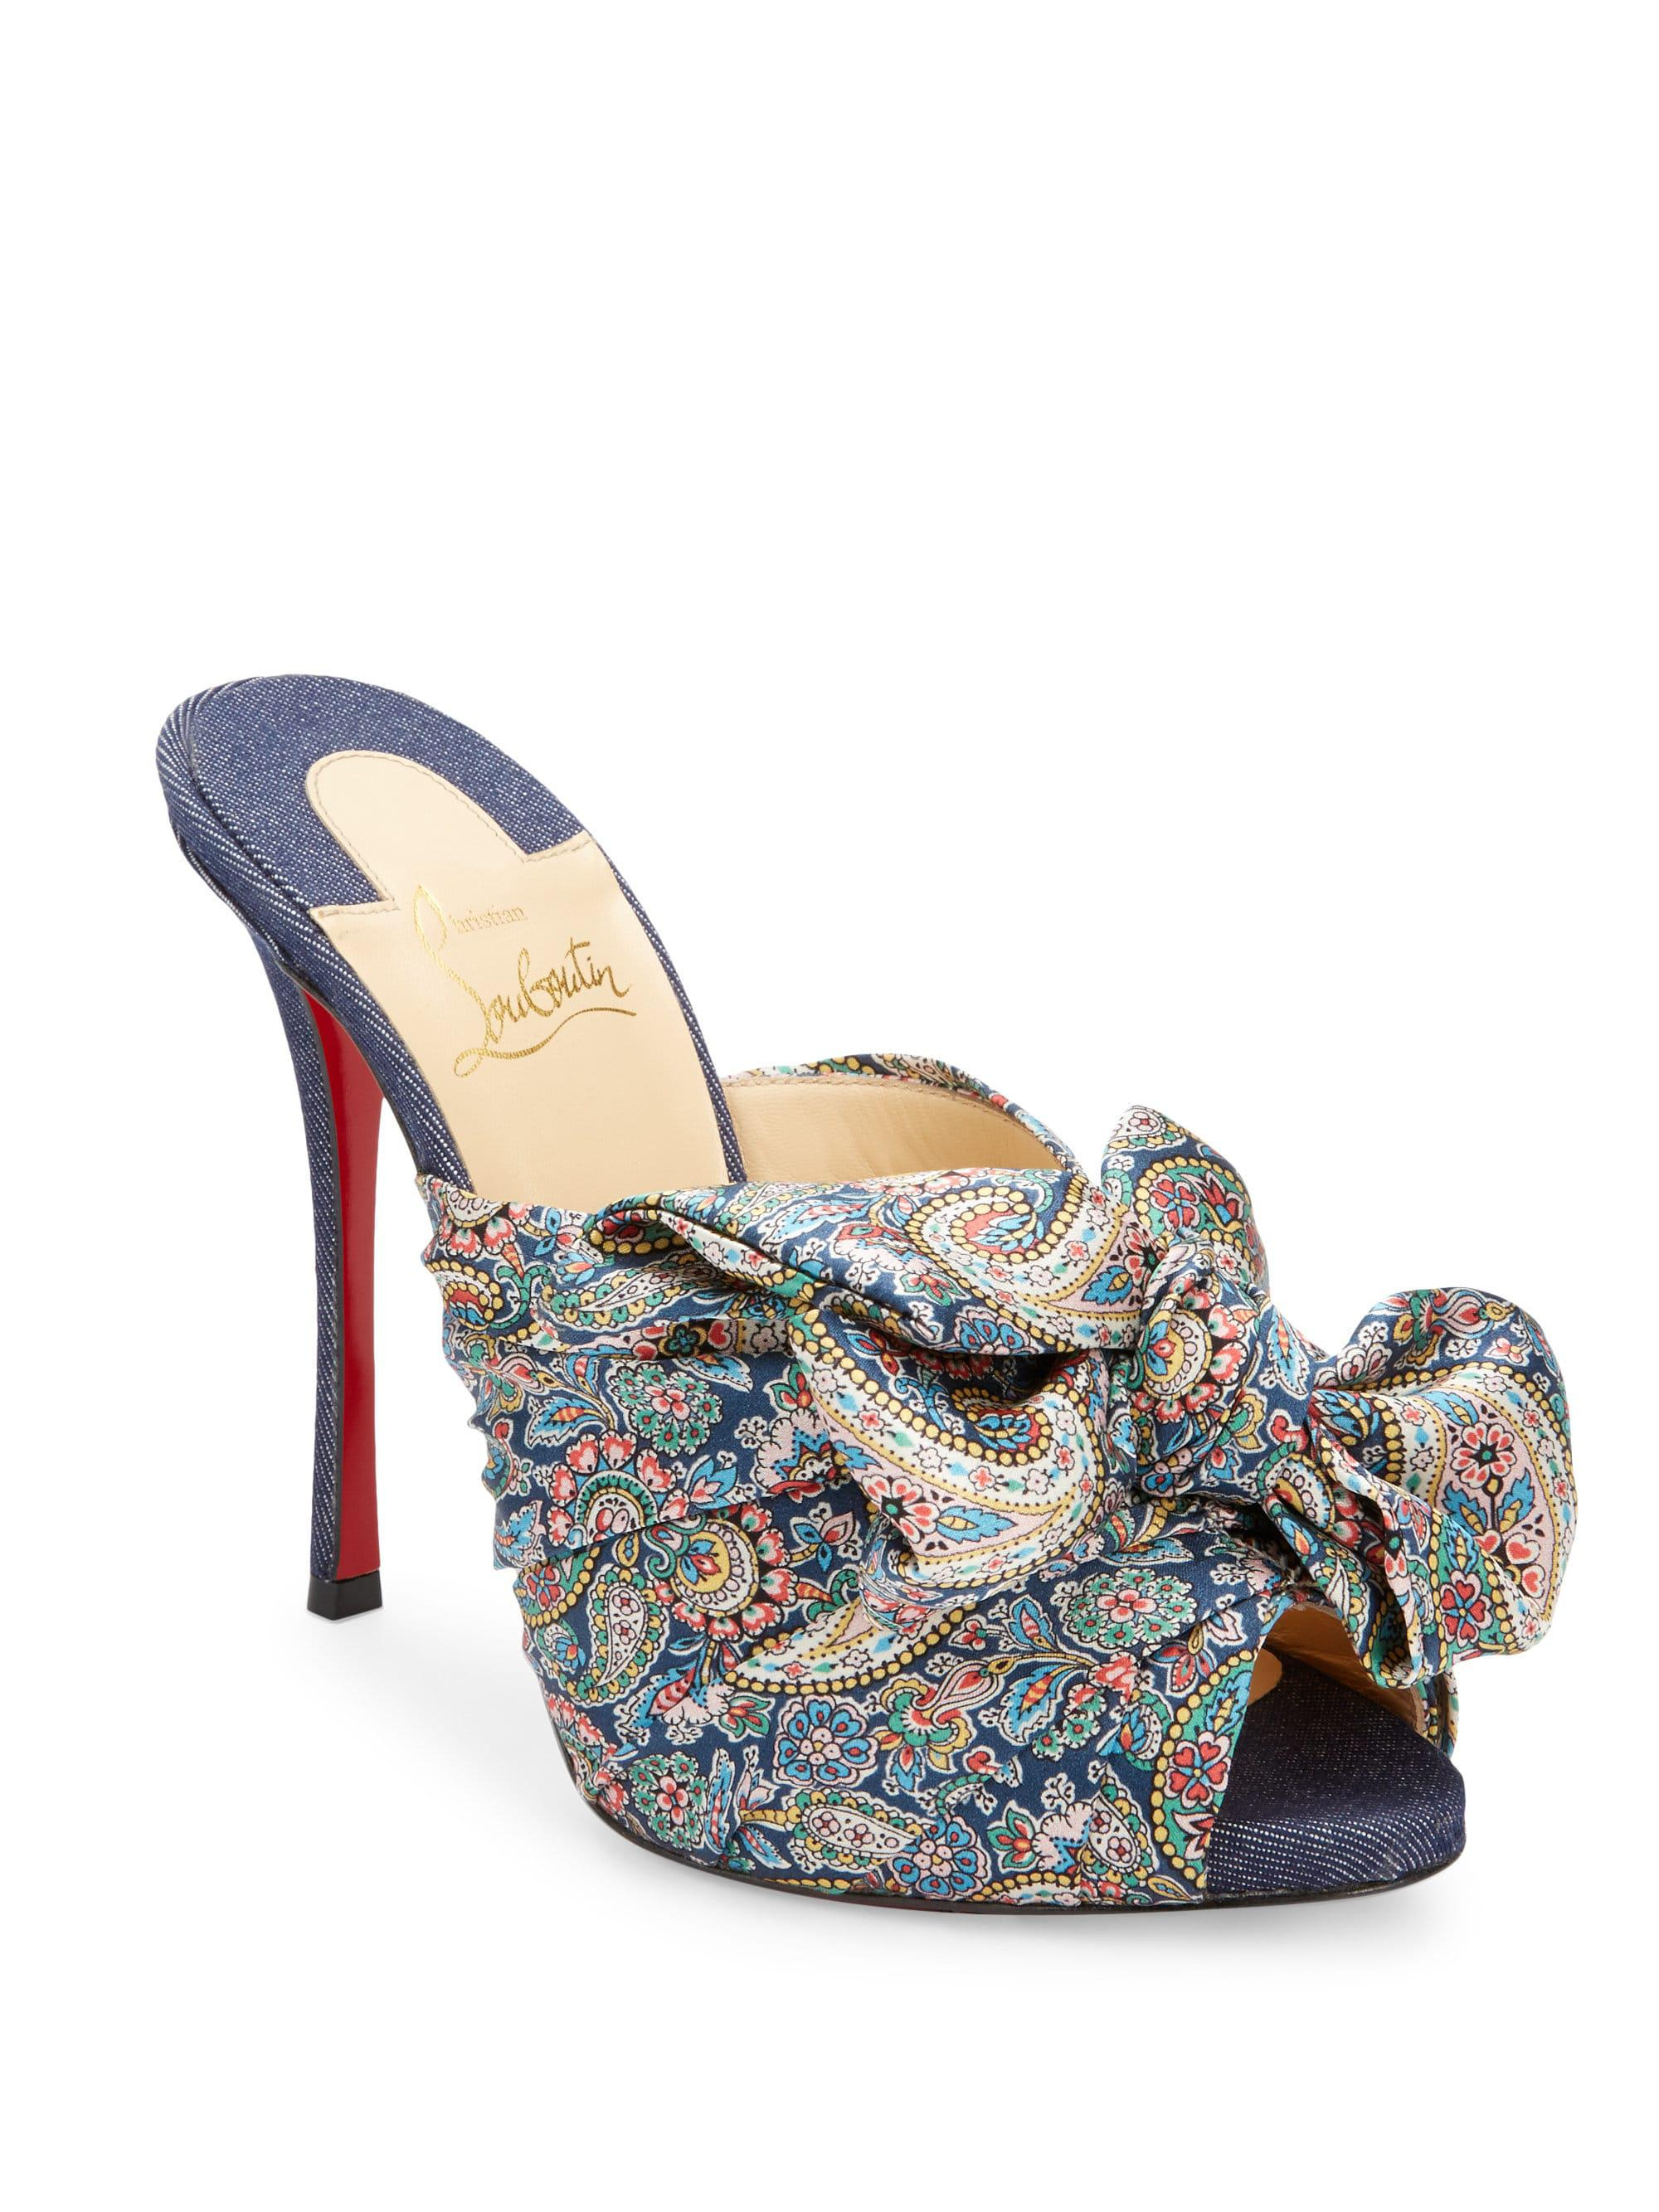 Moniquissima 120 paisley satin and denim mules Christian Louboutin M4LqNgT1